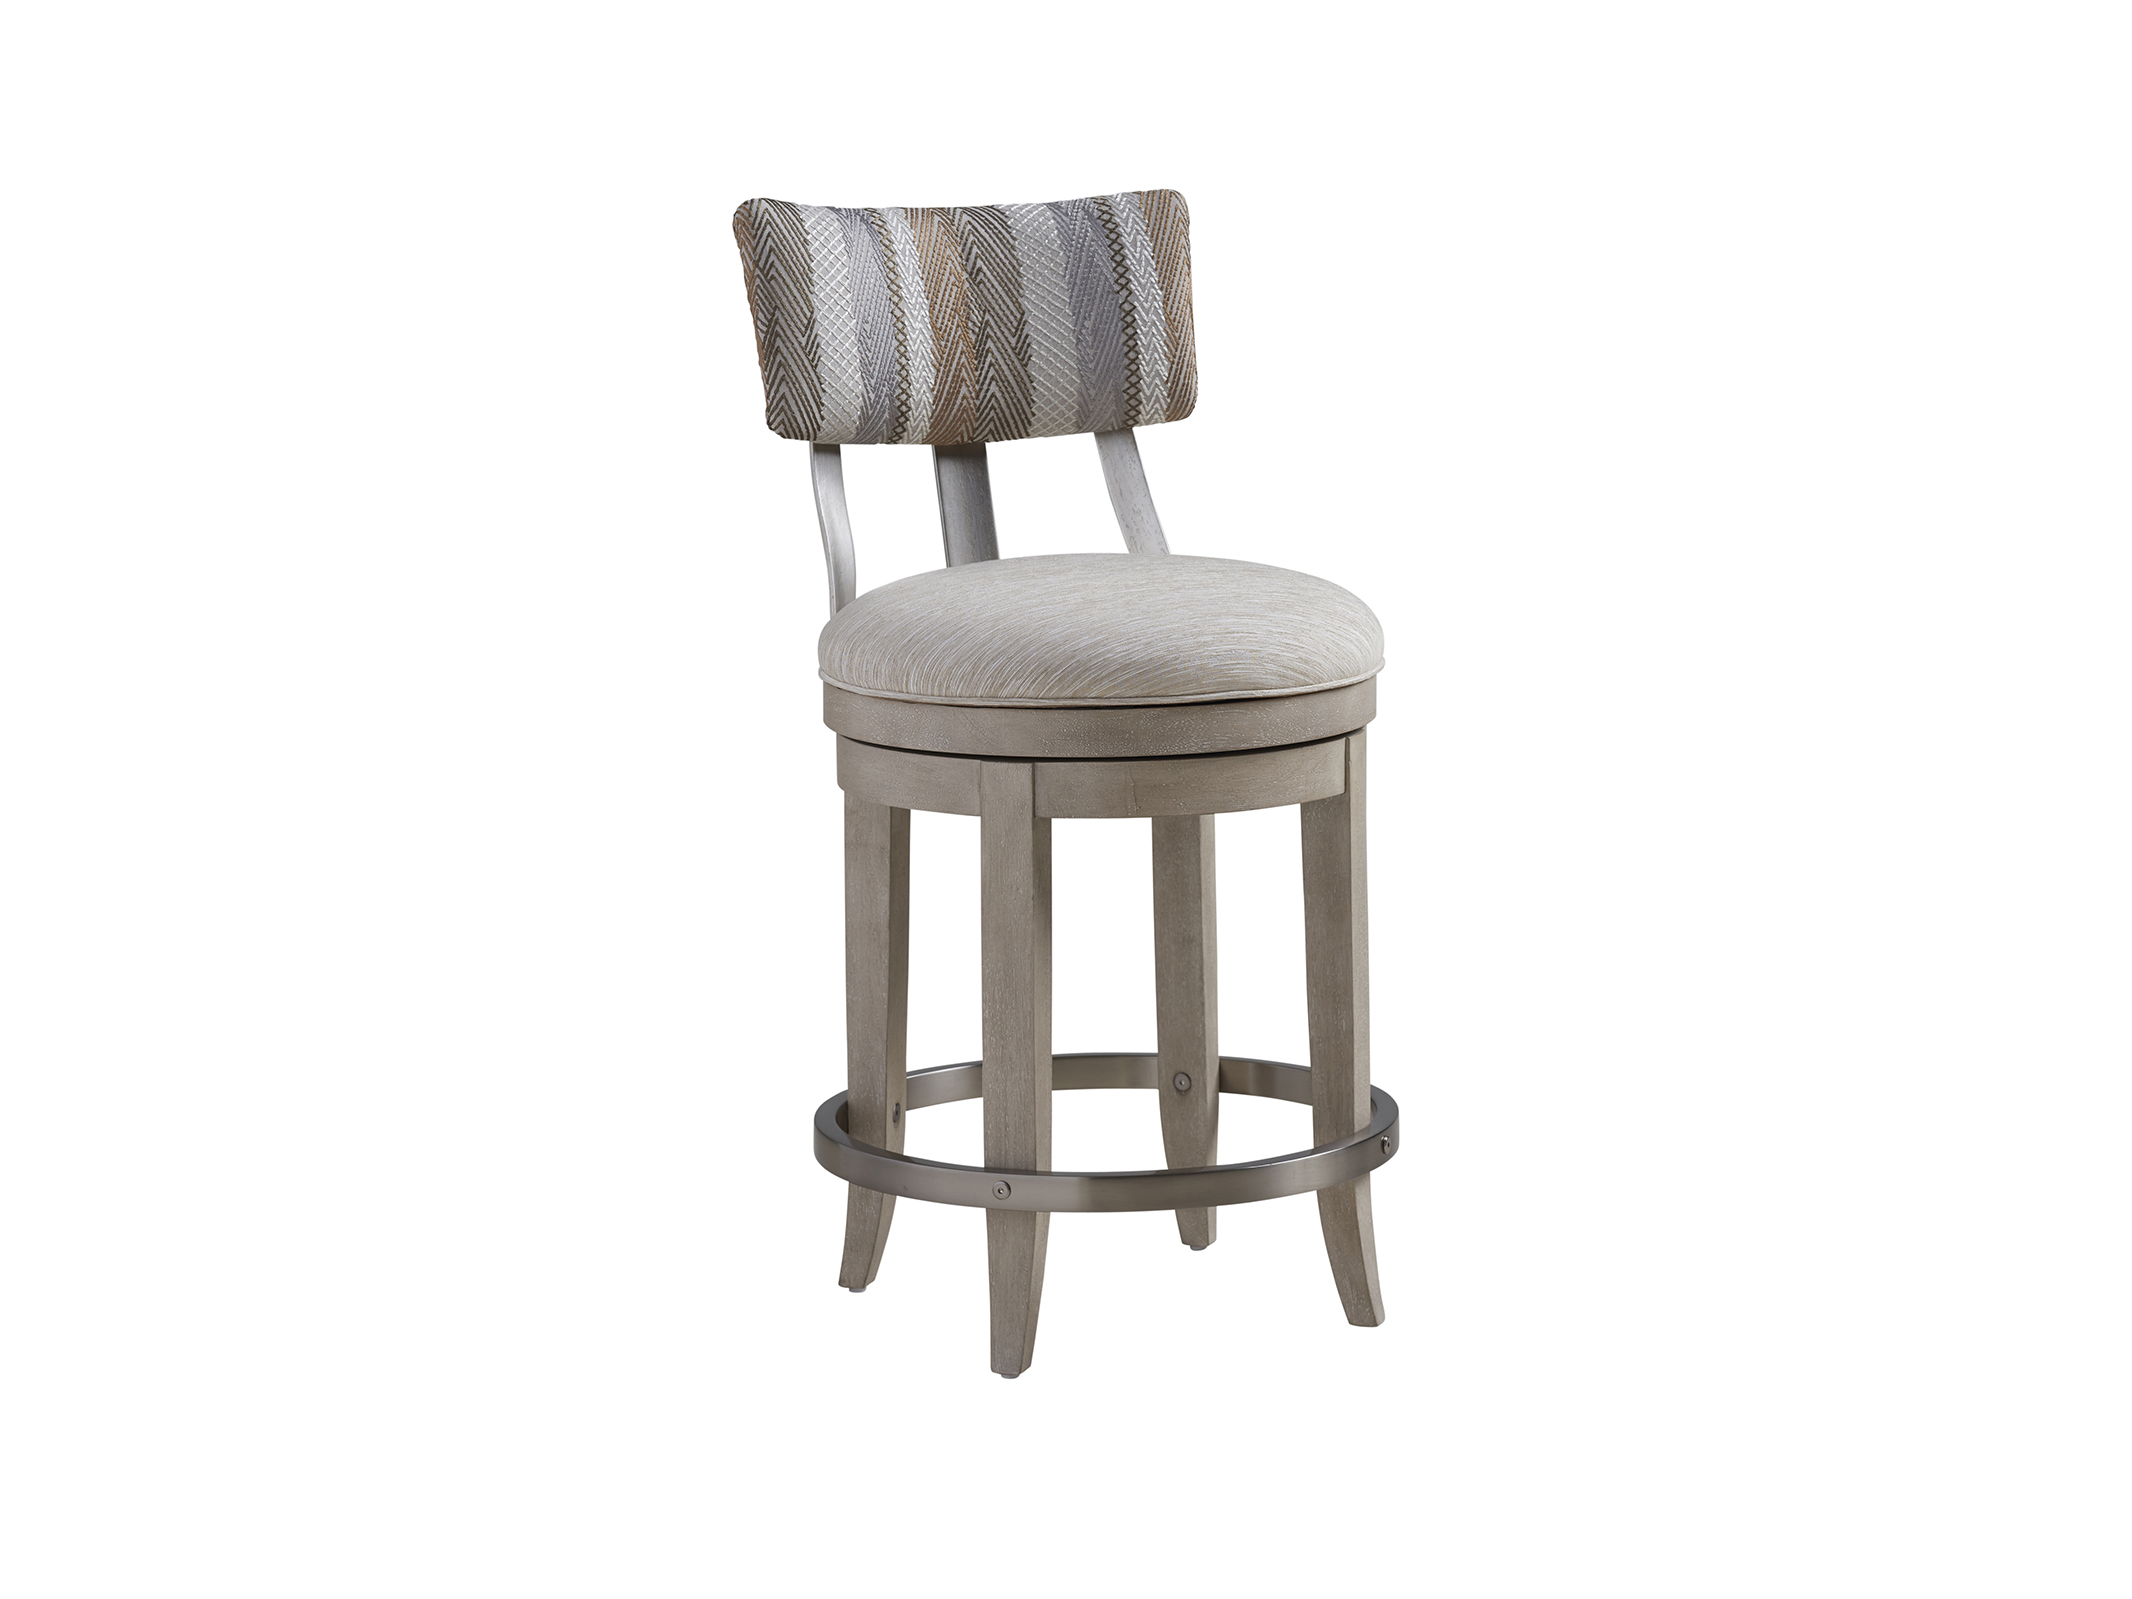 Fabulous Cliffside Swivel Upholstered Counter Stool Unemploymentrelief Wooden Chair Designs For Living Room Unemploymentrelieforg